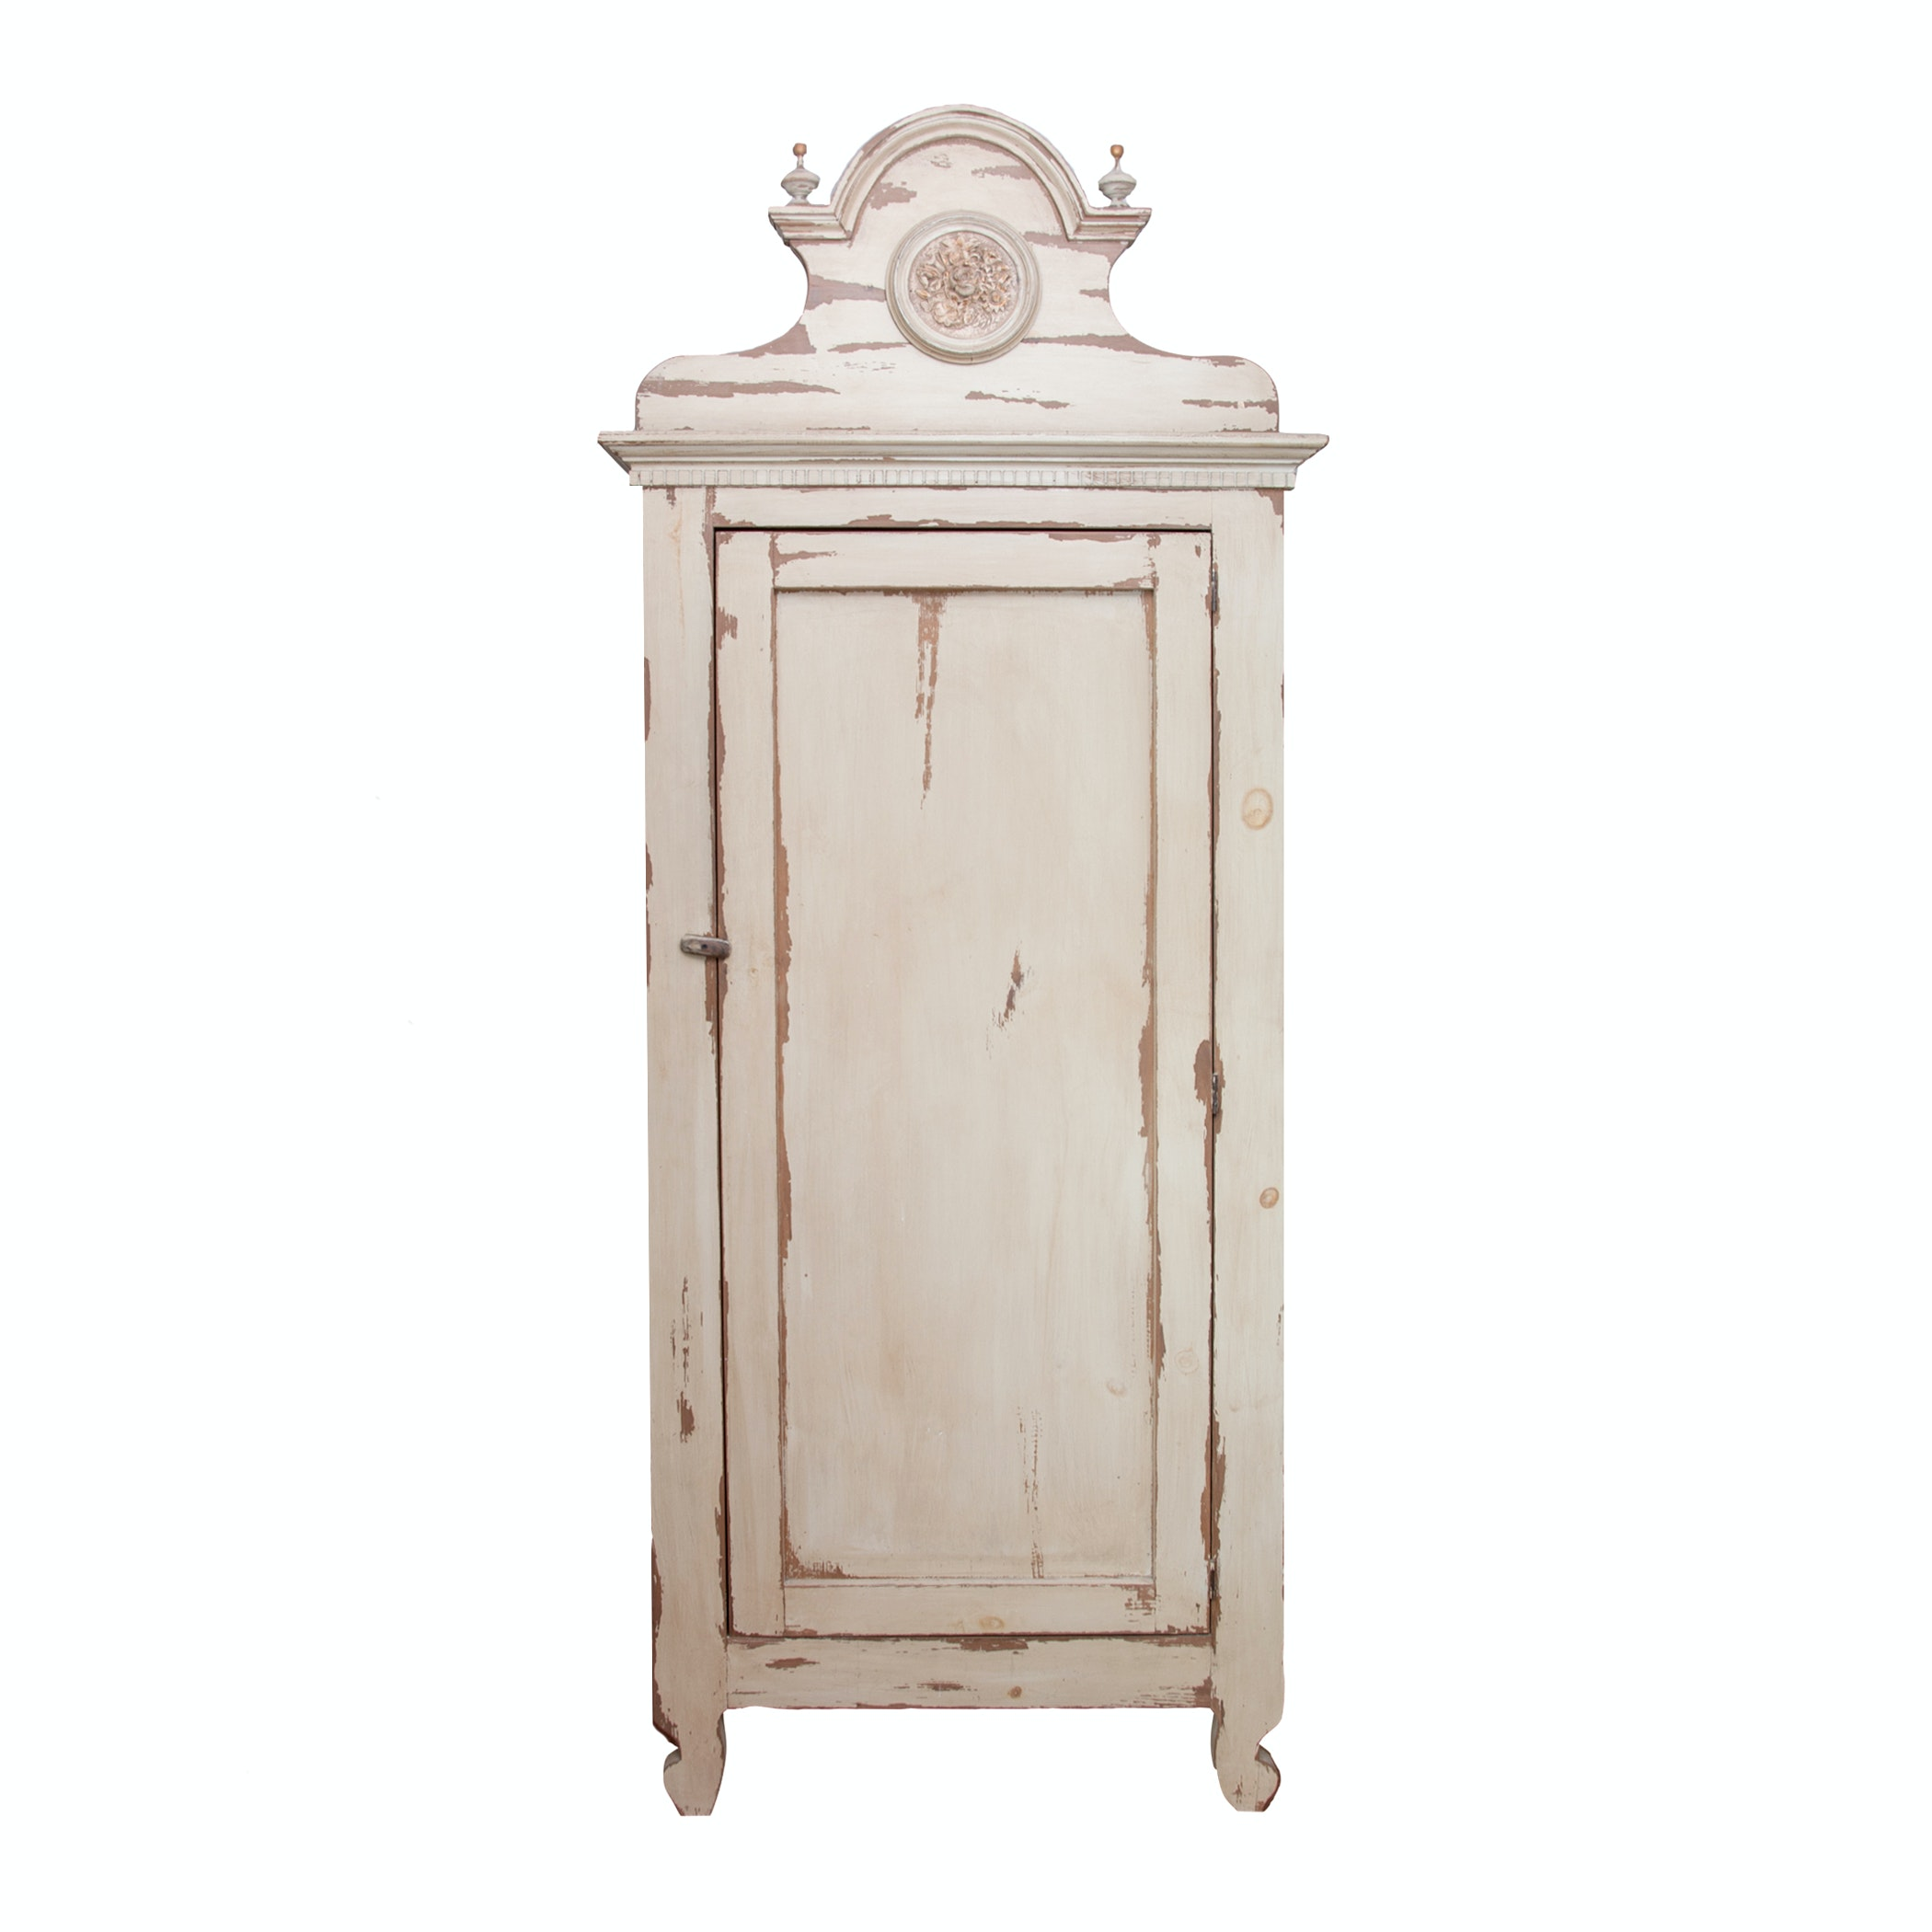 Contemporary Provencal Inspired Wooden Armoire